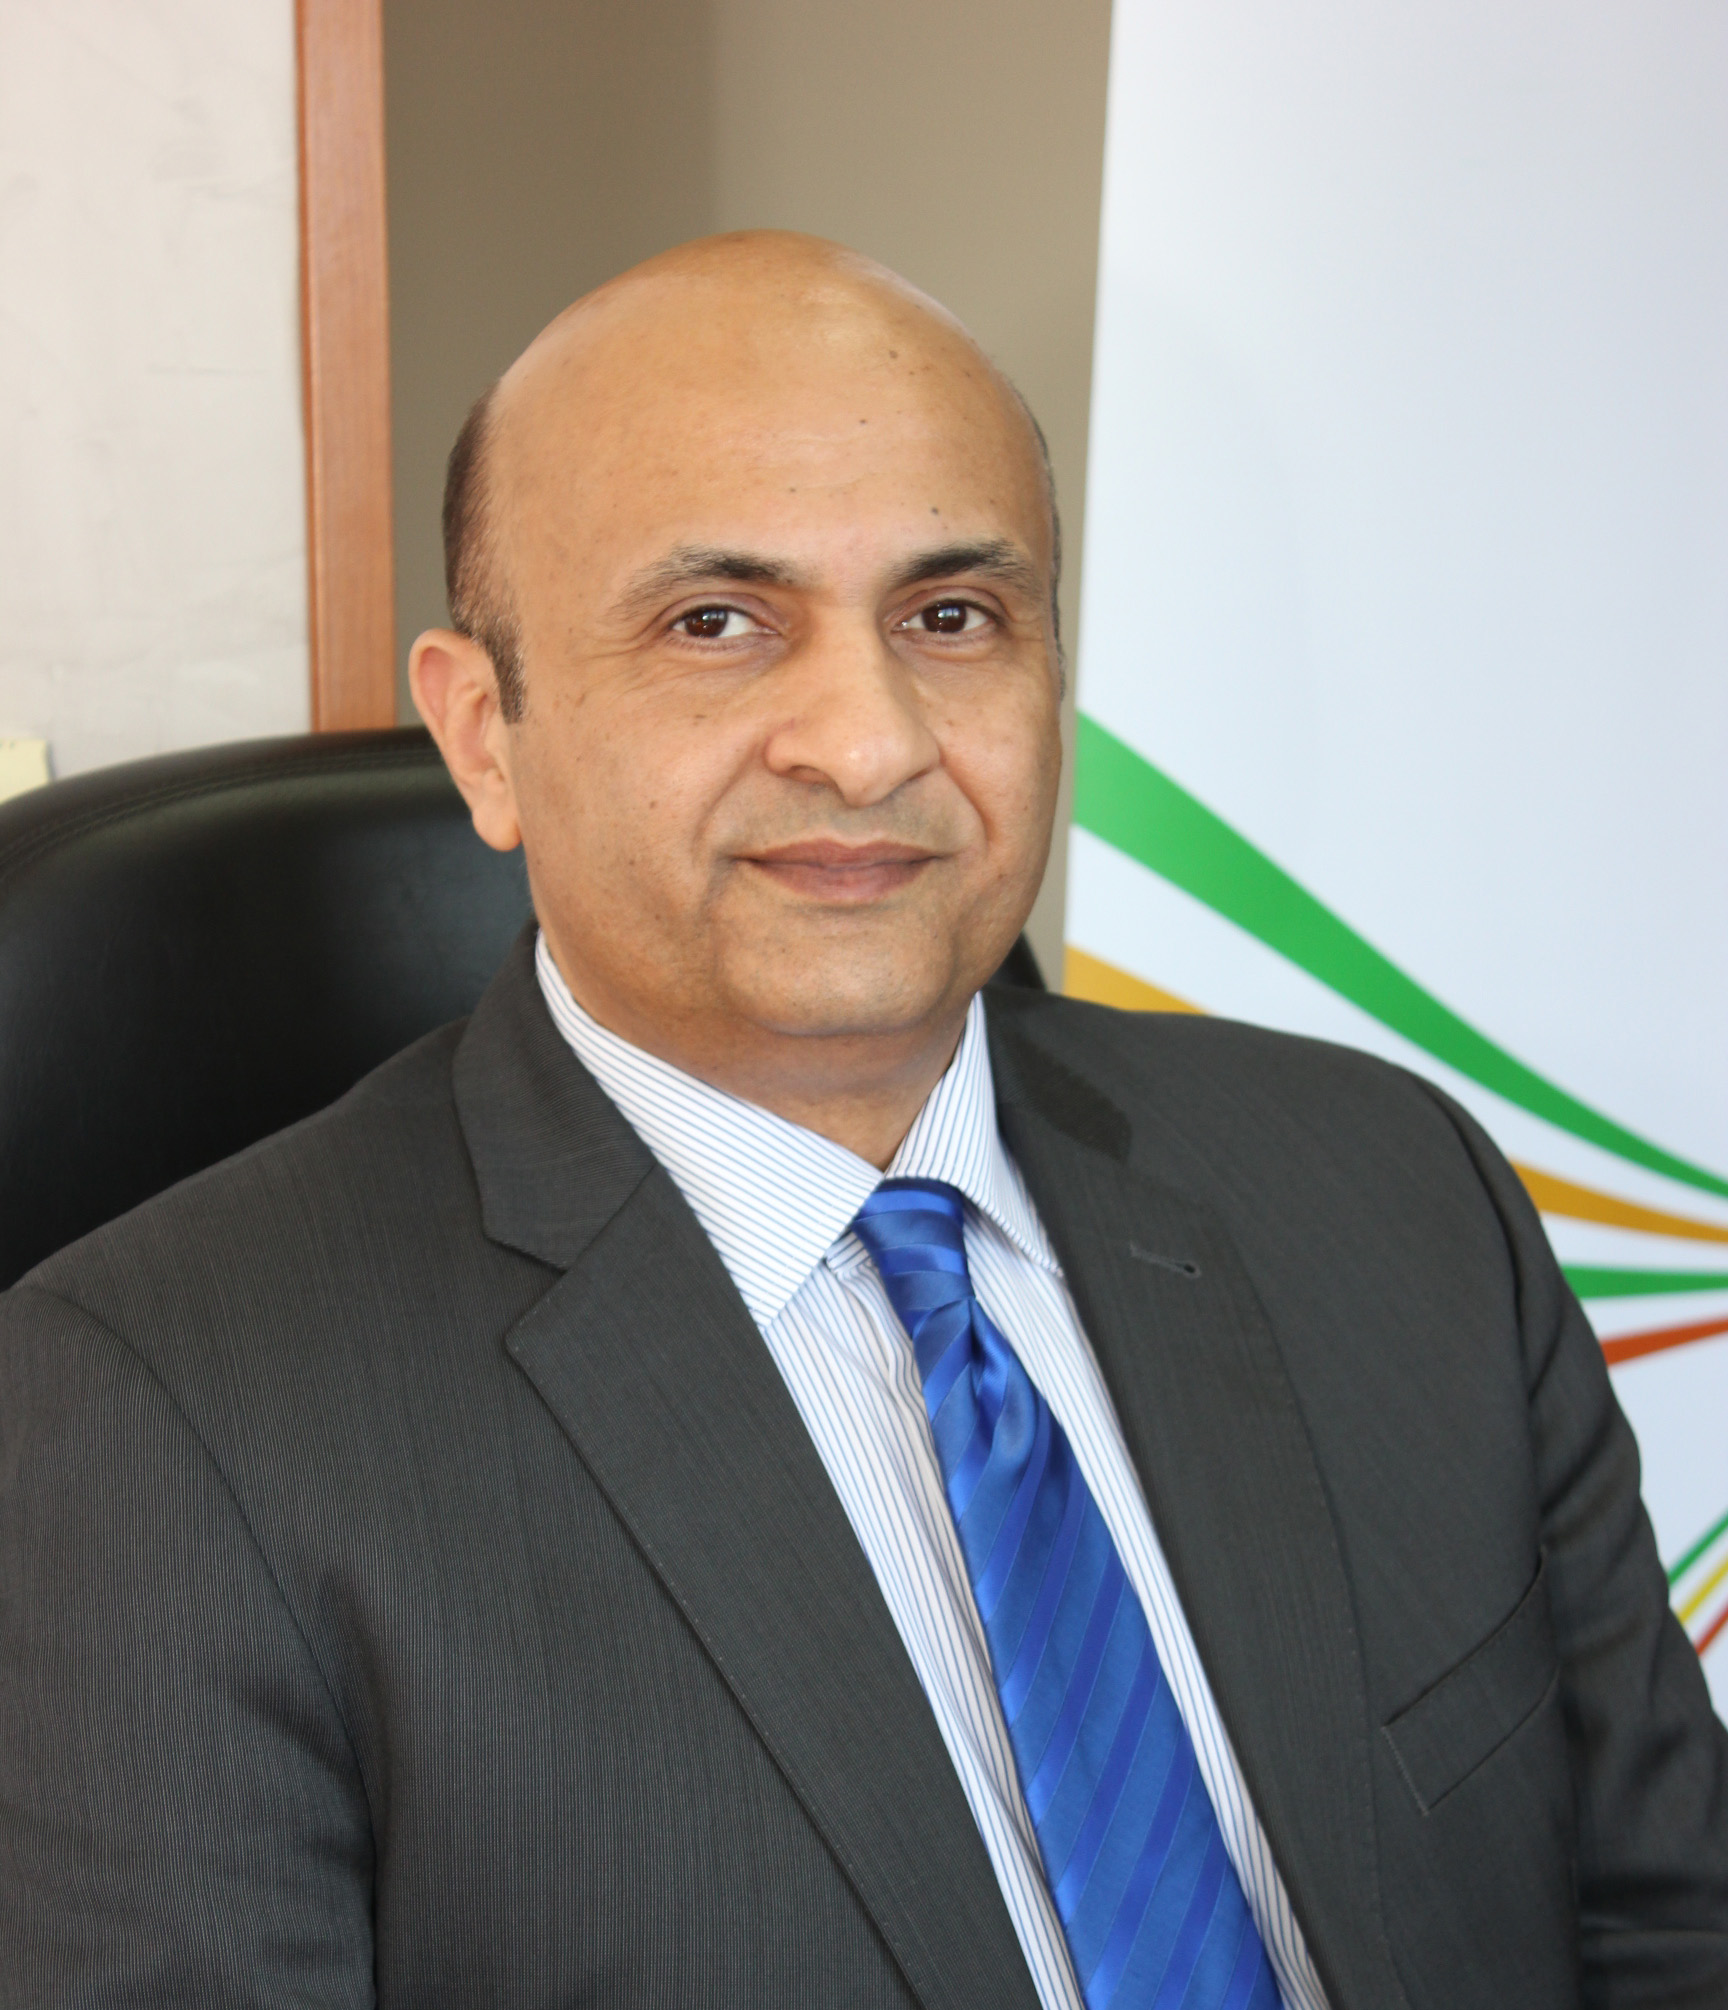 Haitham Abdou, the general manager of Xerox Egypt